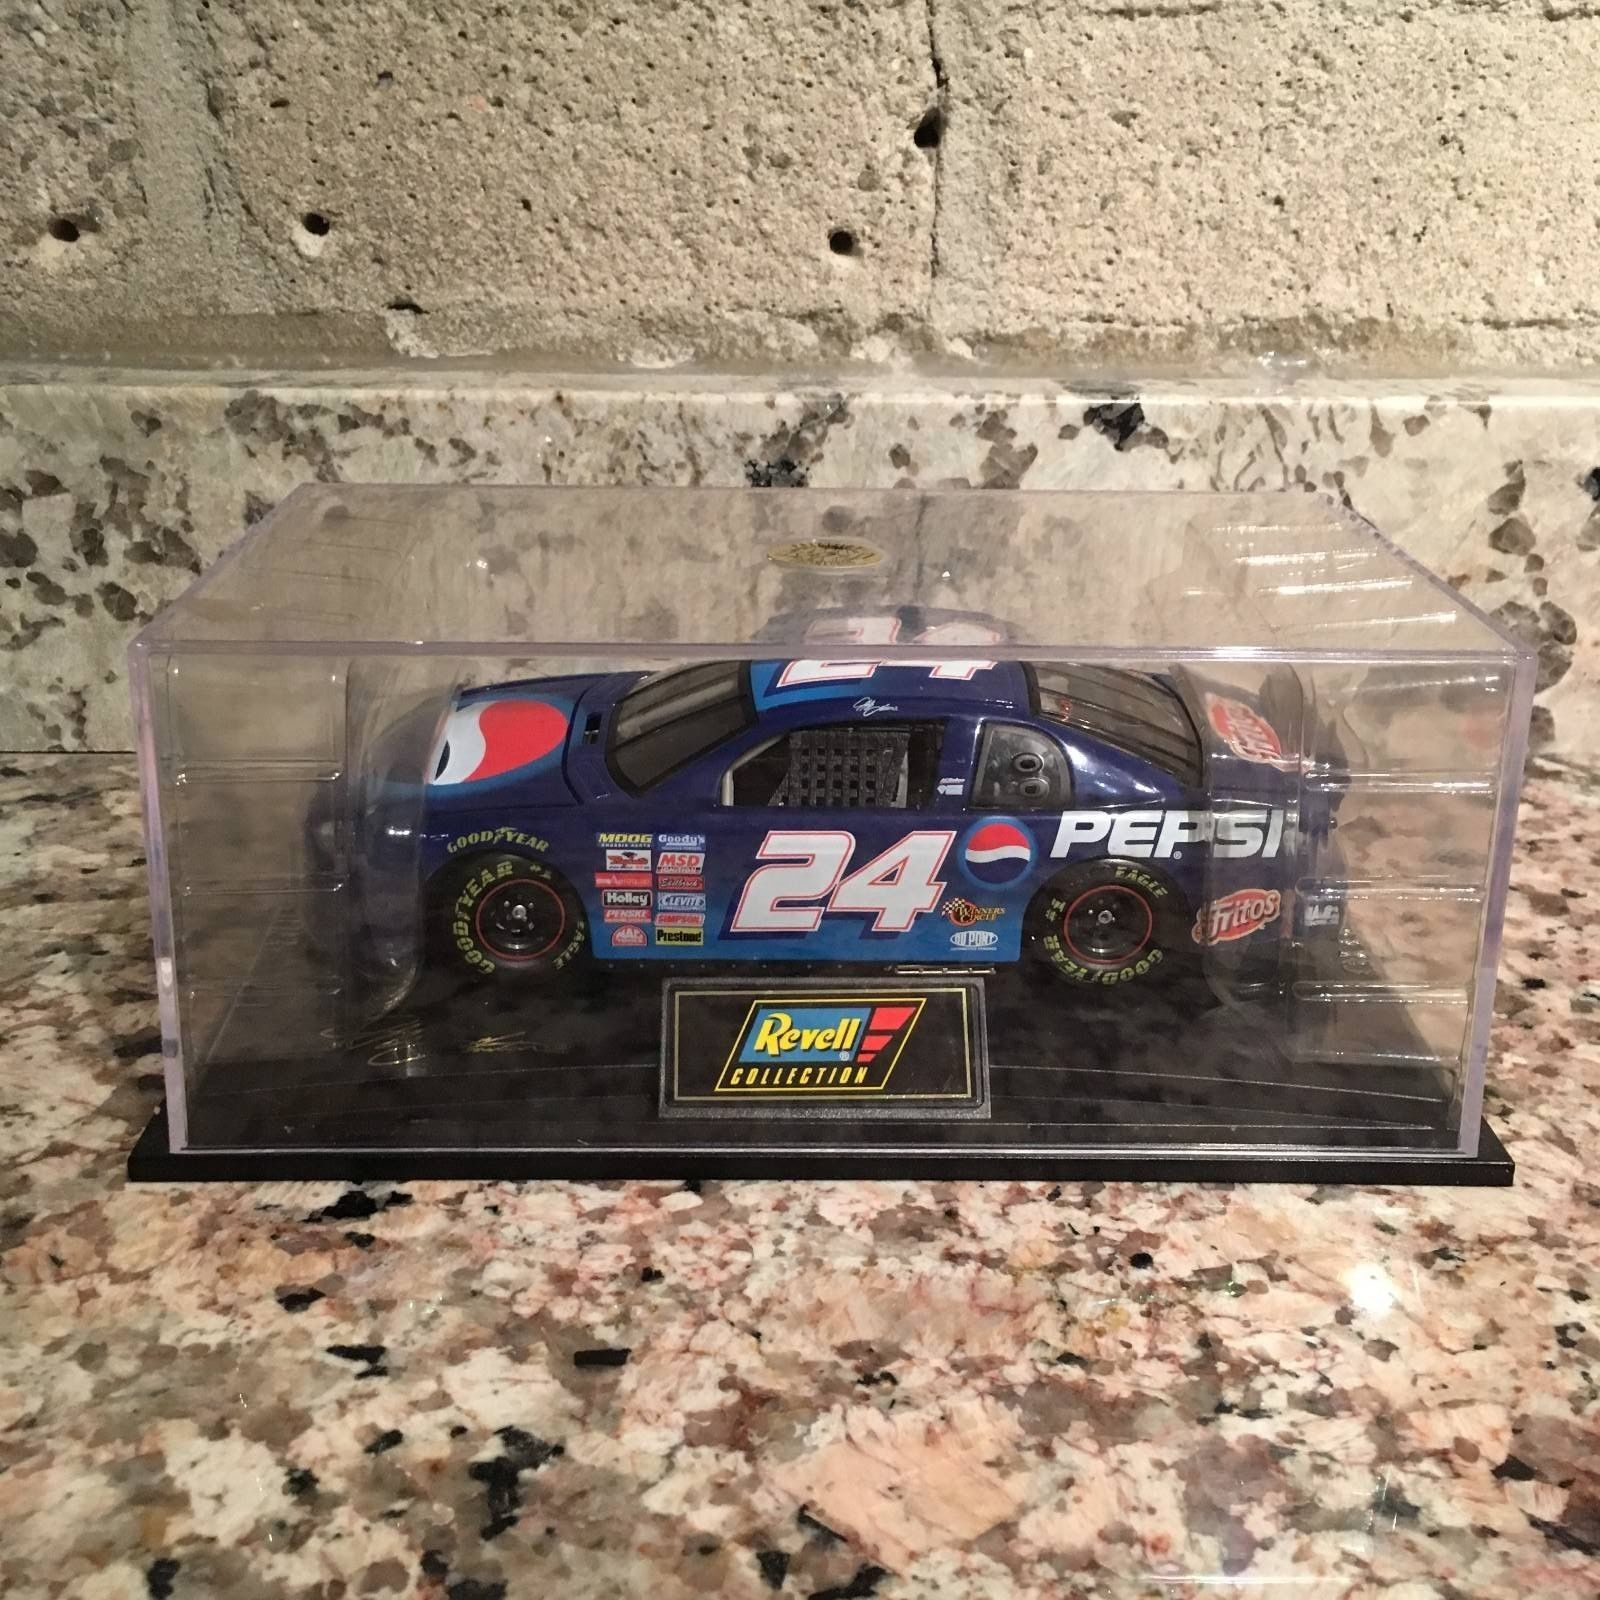 Jeff Gordon No. 24 1999 Pepsi Chevy Monte Carlo 1:24 Die Cast Car by Revell